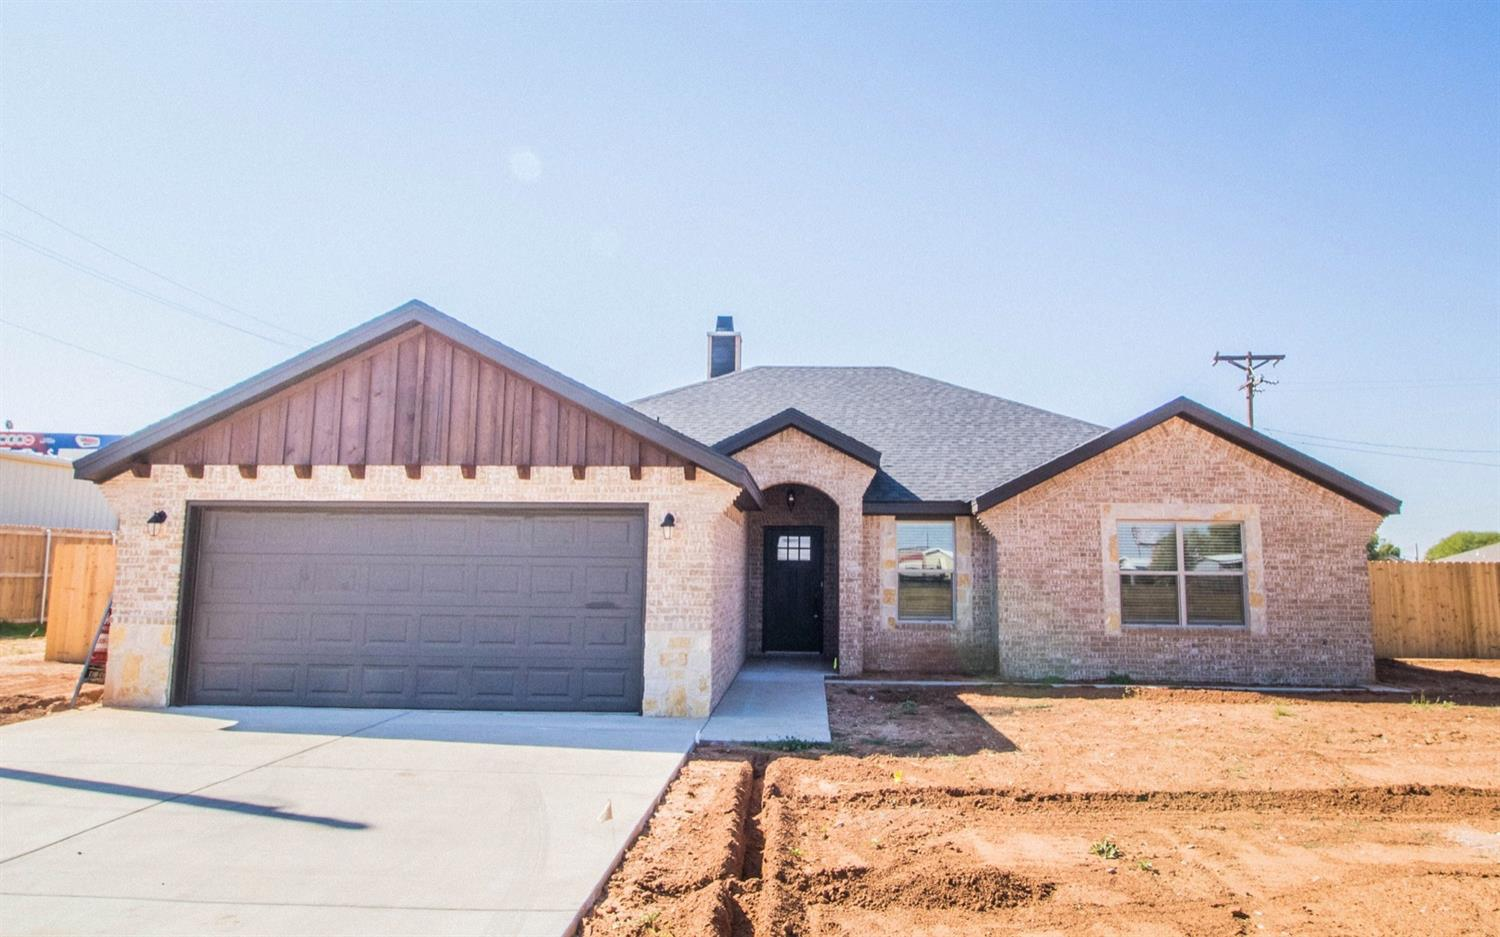 New construction in New Deal! This 3 bedroom 2 bath home is made for entertaining! The open concept living room and kitchen are complete with a bricked fireplace and built ins. Escape to a large isolated master that features his and her closets and an oversized walk in shower. The large laundry room includes a media closet, room for a fridge, and a built in mud bench!